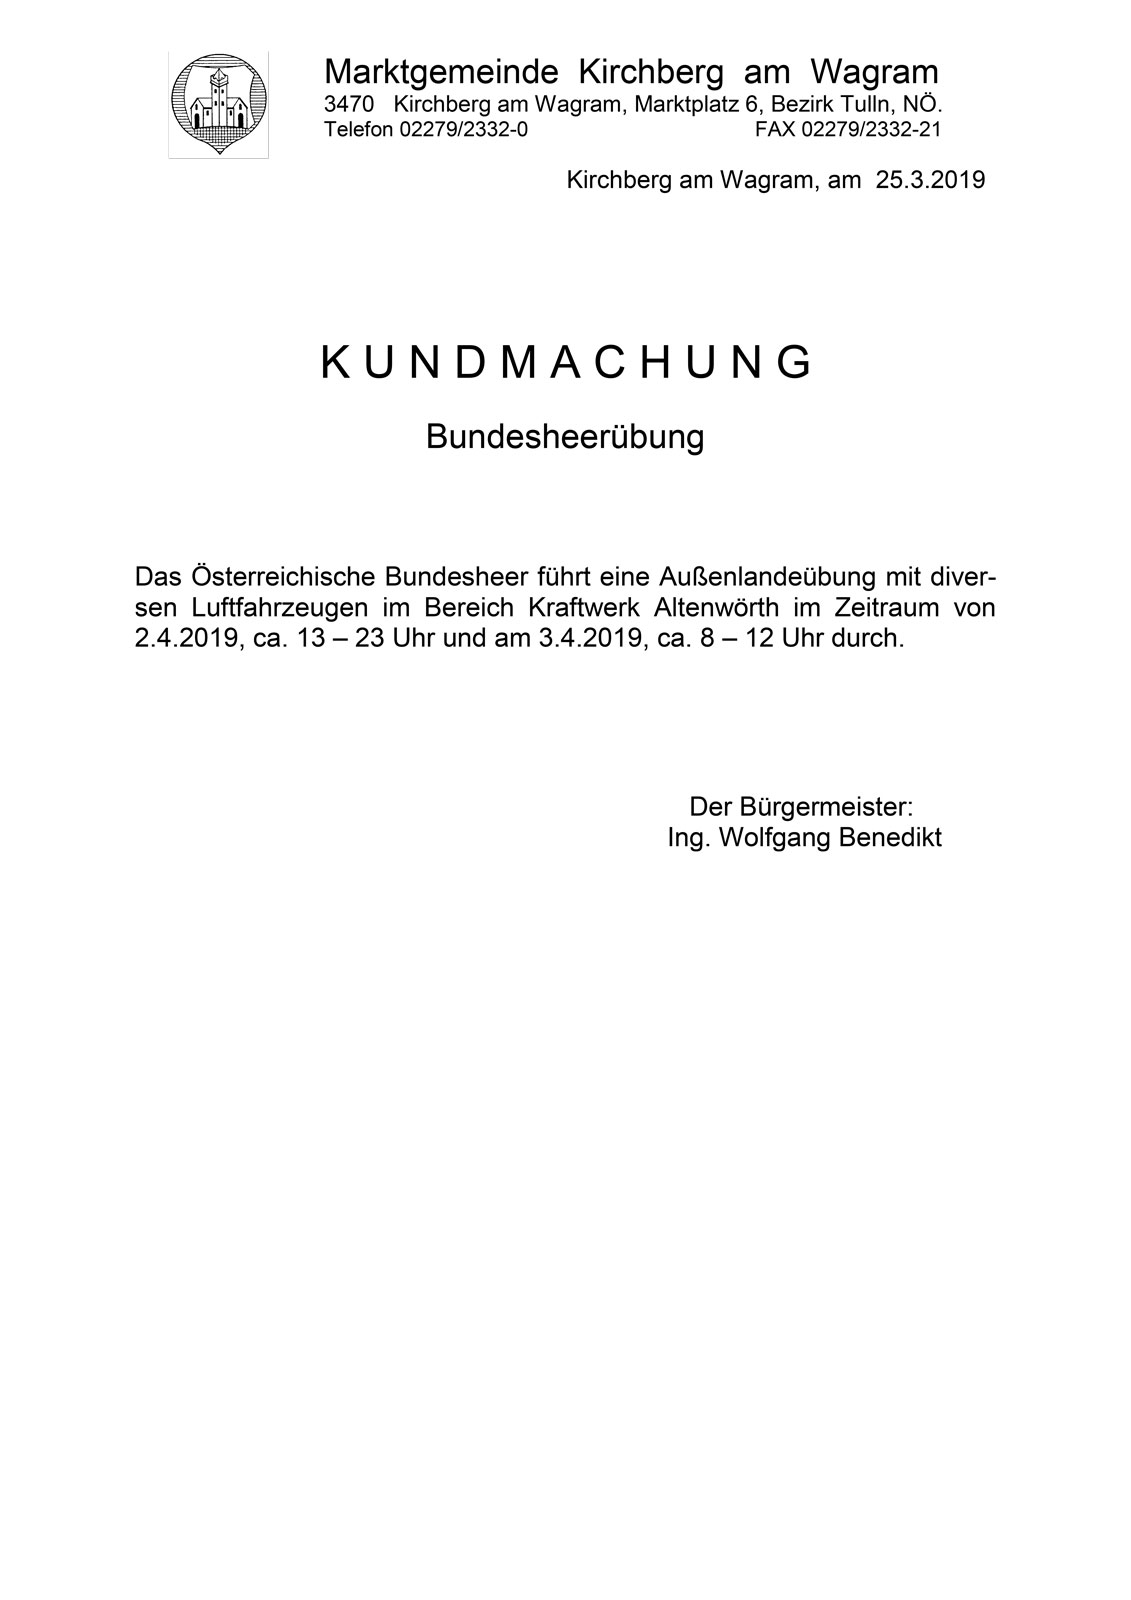 Bundesheerübung in Altenwörth